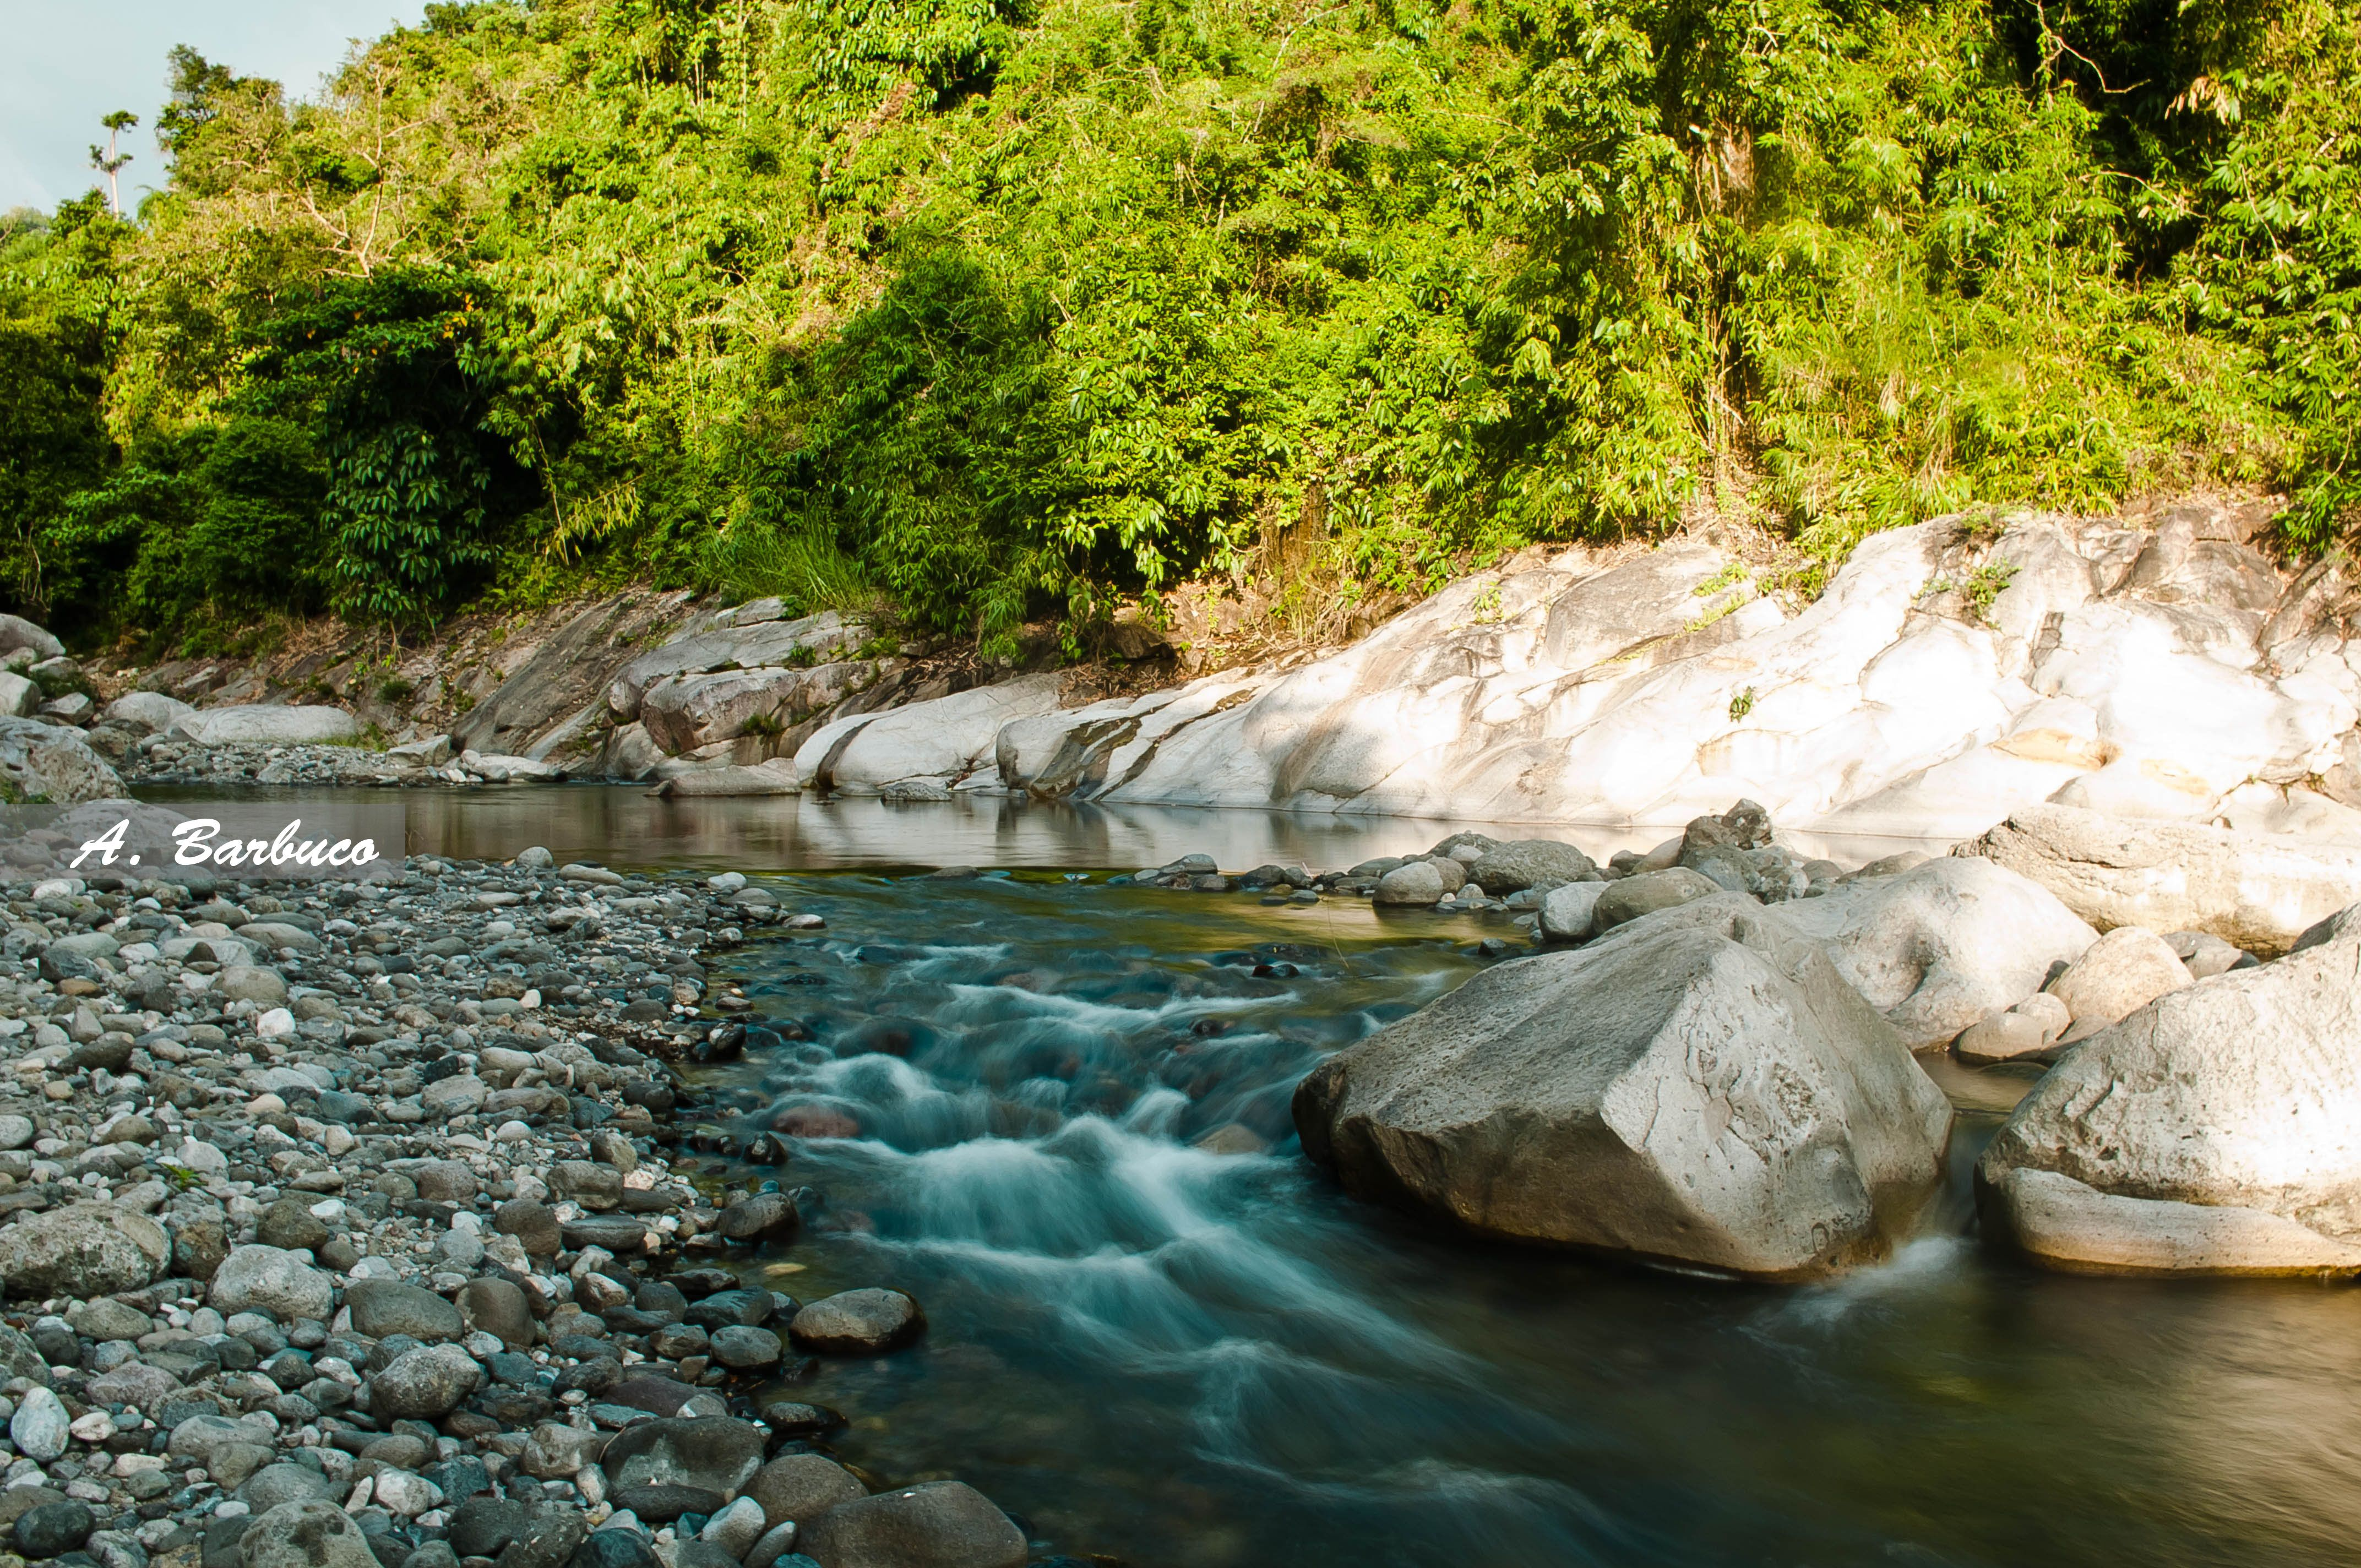 A clear water on the River of Tapuacan River, Water